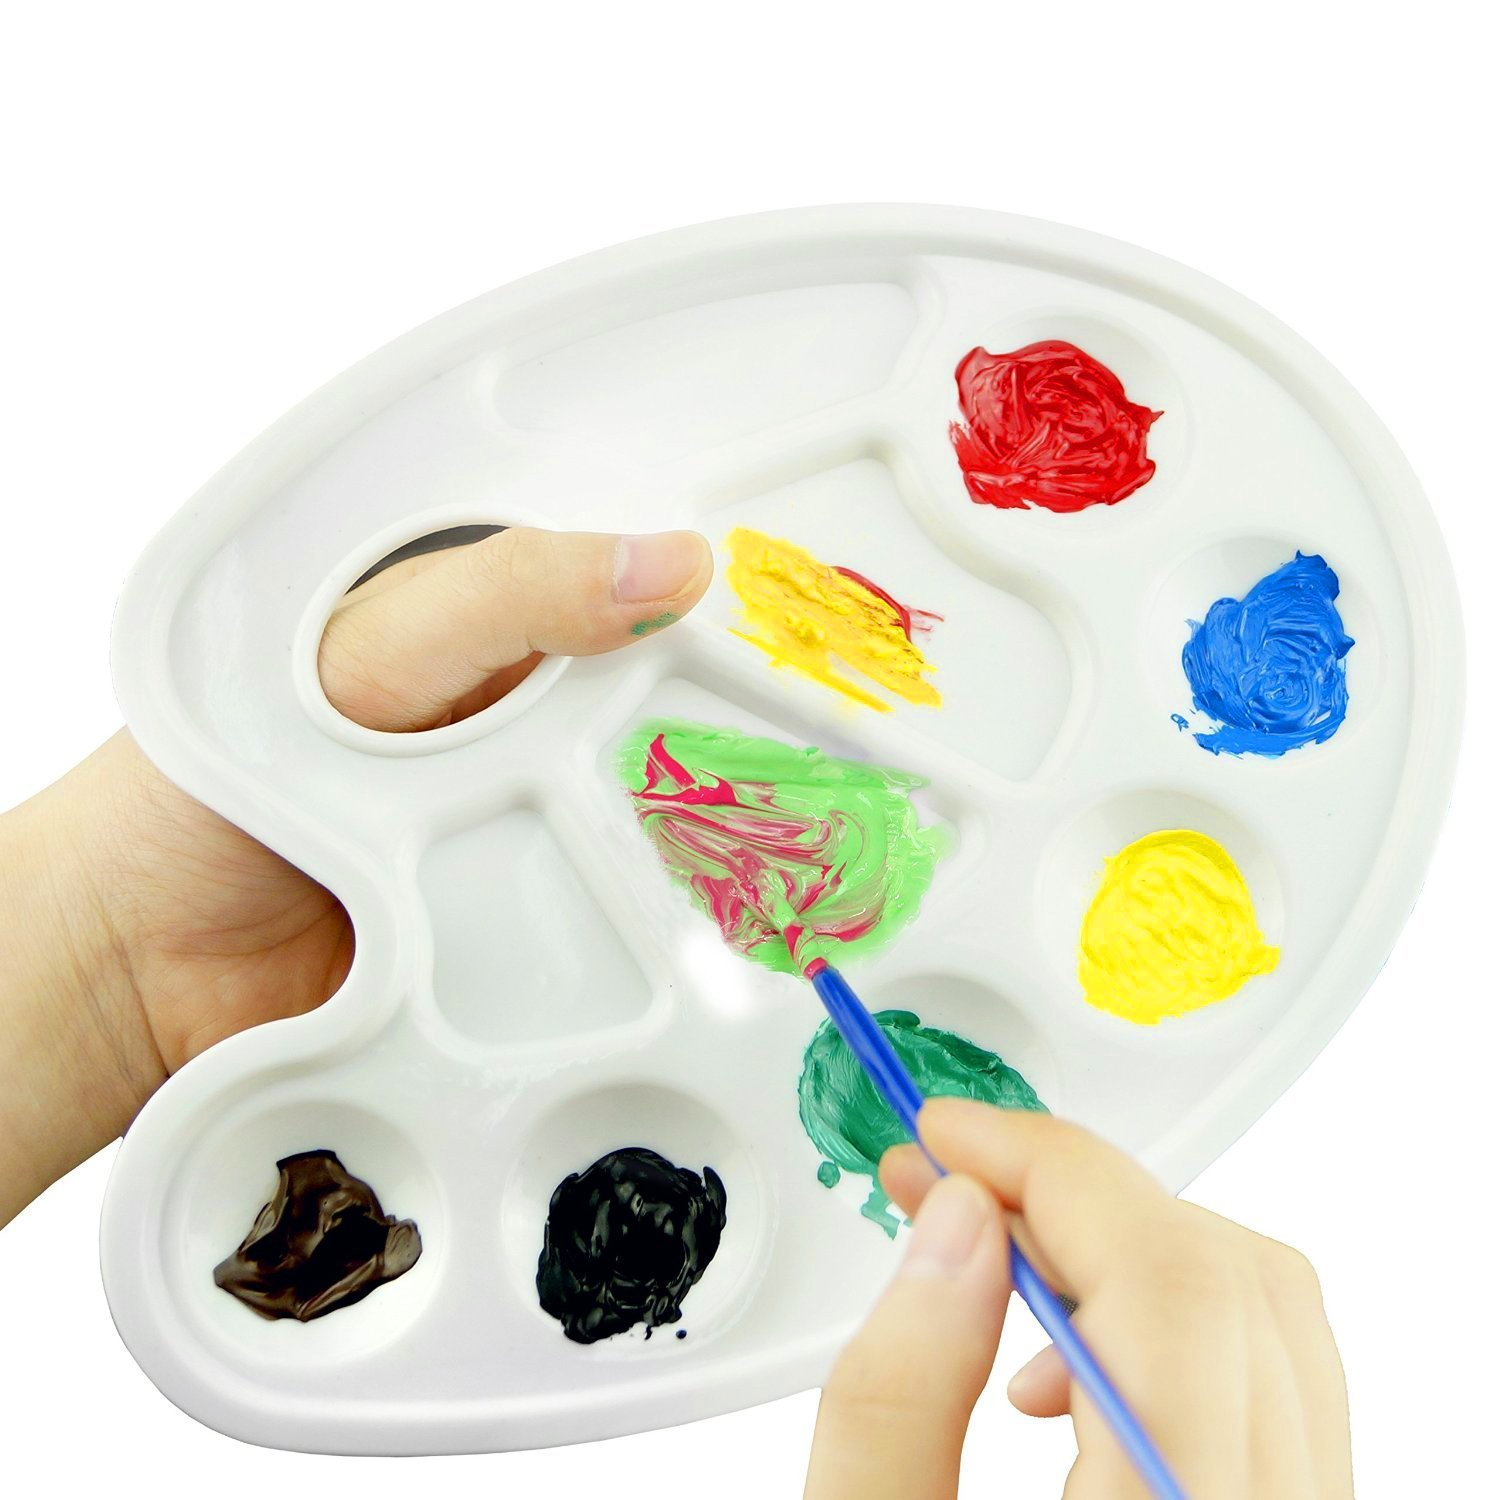 Hosaire Painting Tray Palette Art Palettes 10 Wells with Thumb Hole for Painting Drawing by Hosaire (Image #5)